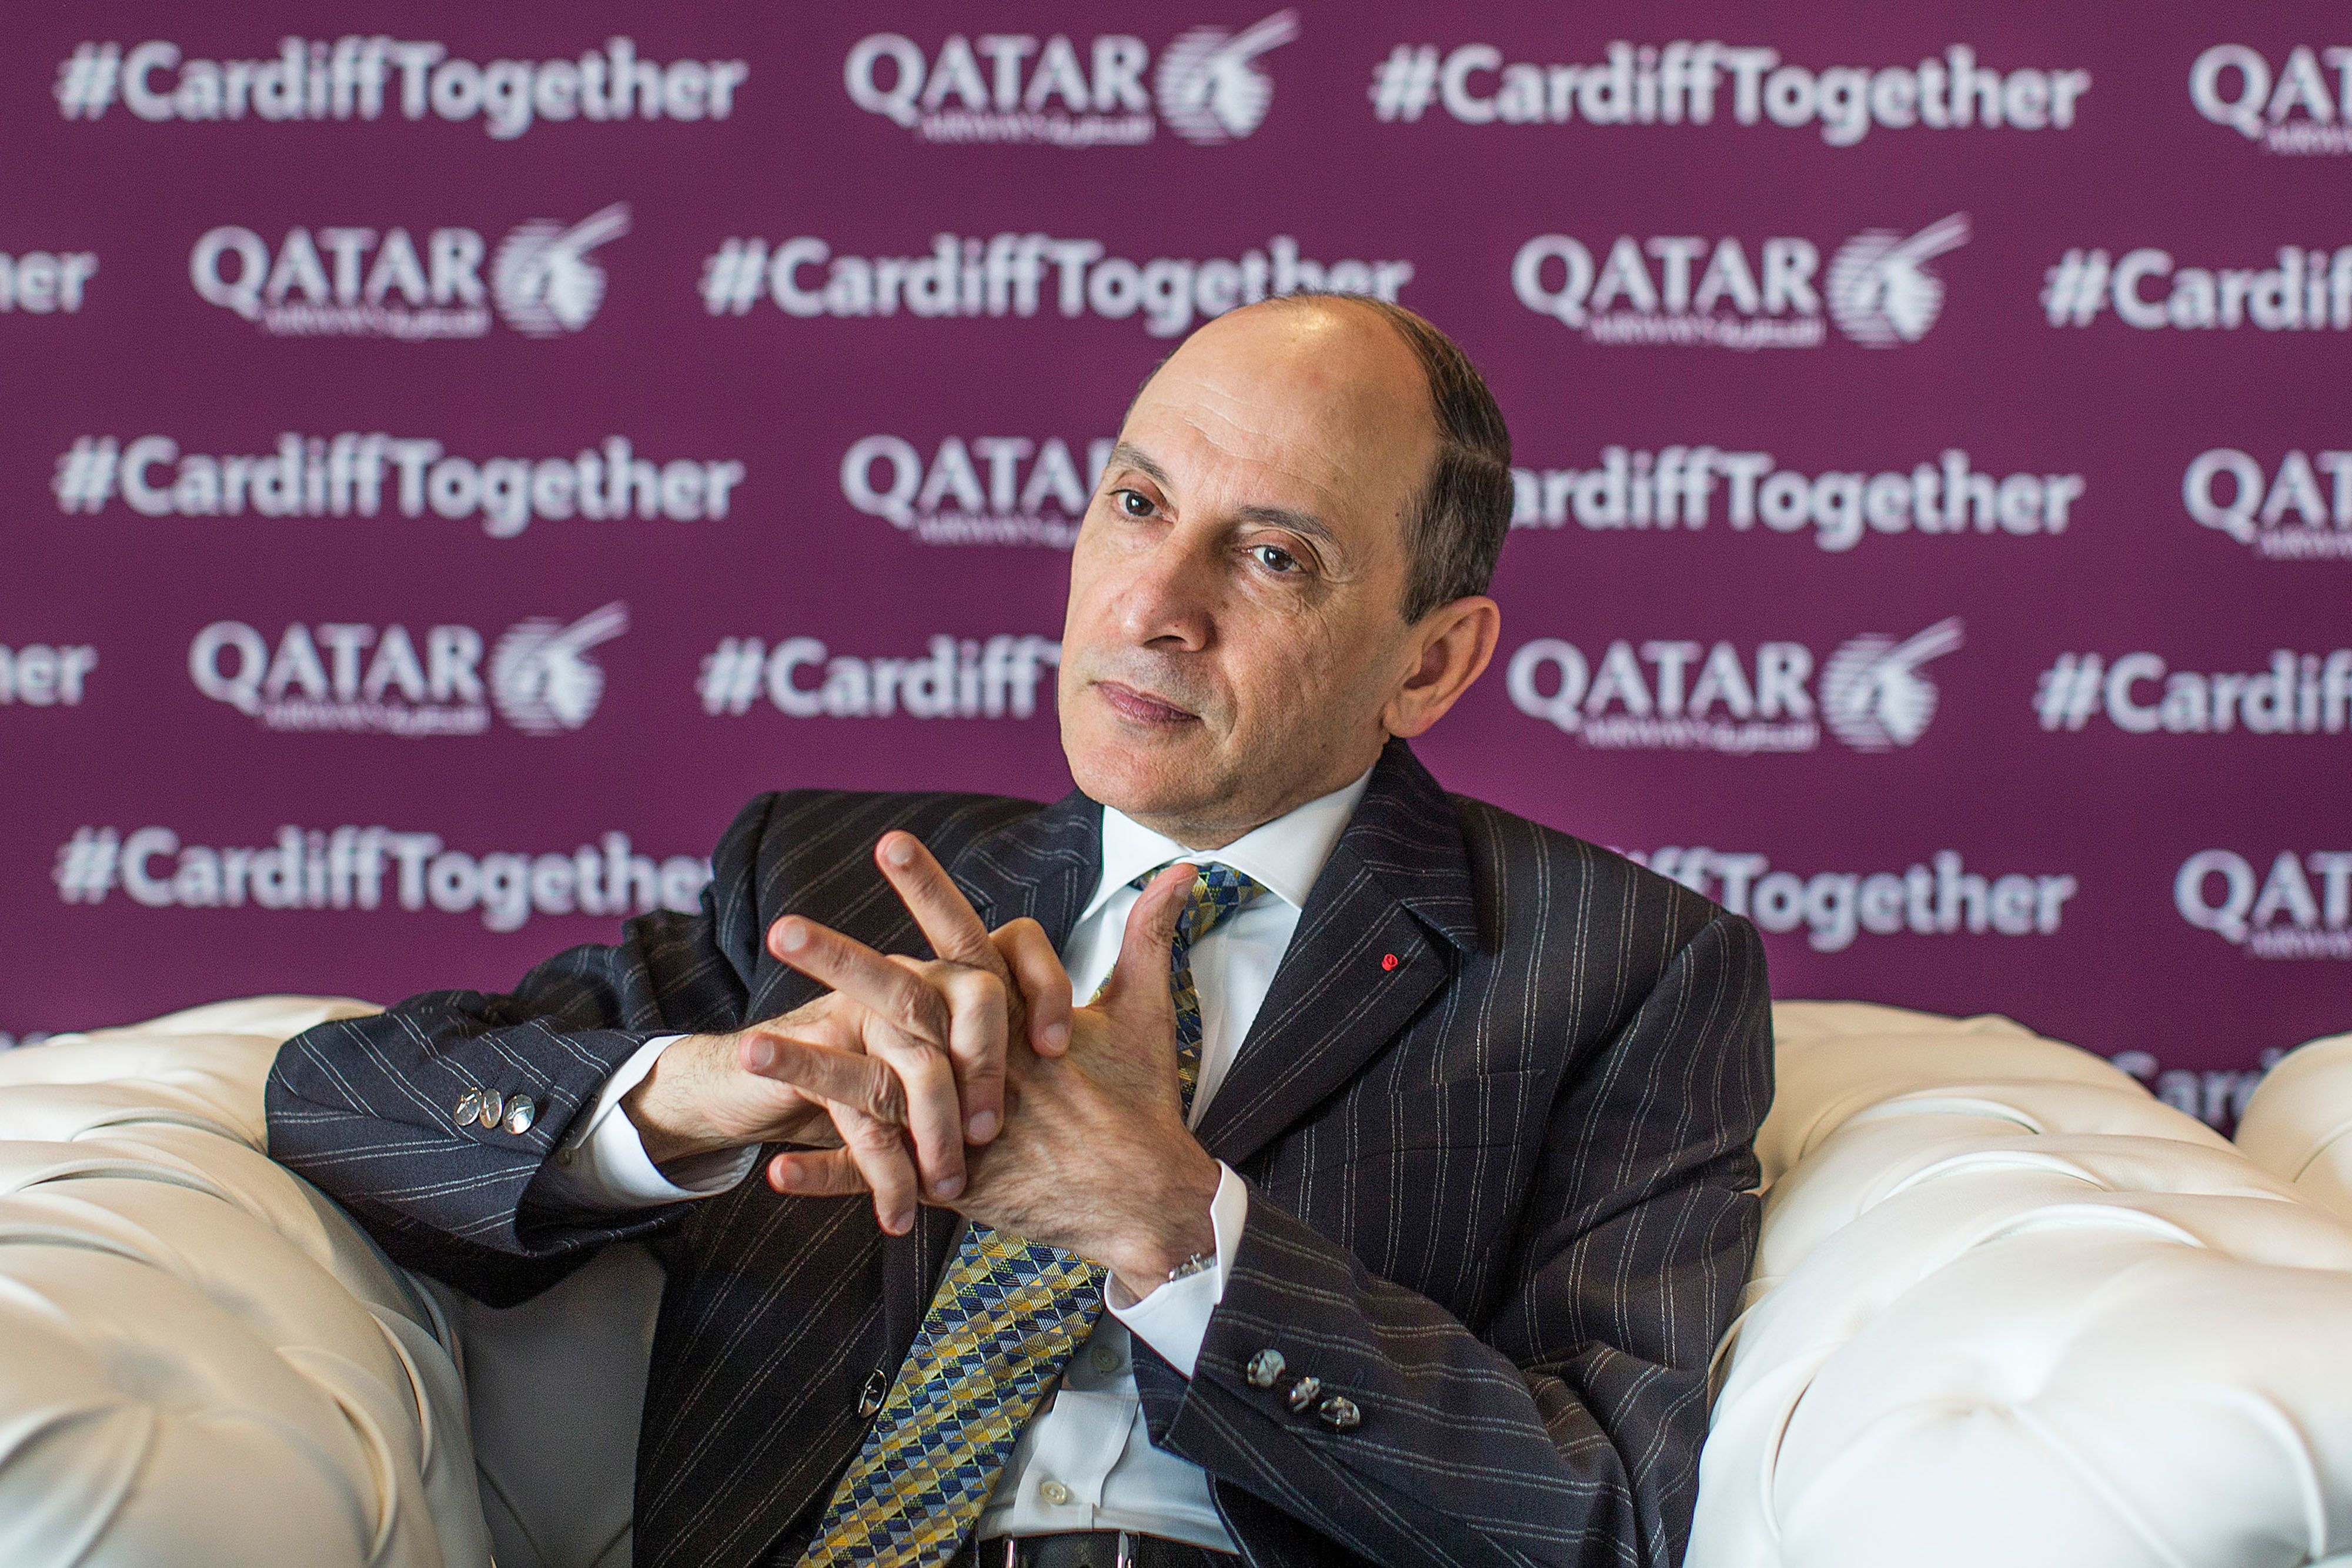 Qatar Airways CEO Akbar Al Baker speaks during an interview on May 2, 2018, in Cardiff, U.K.